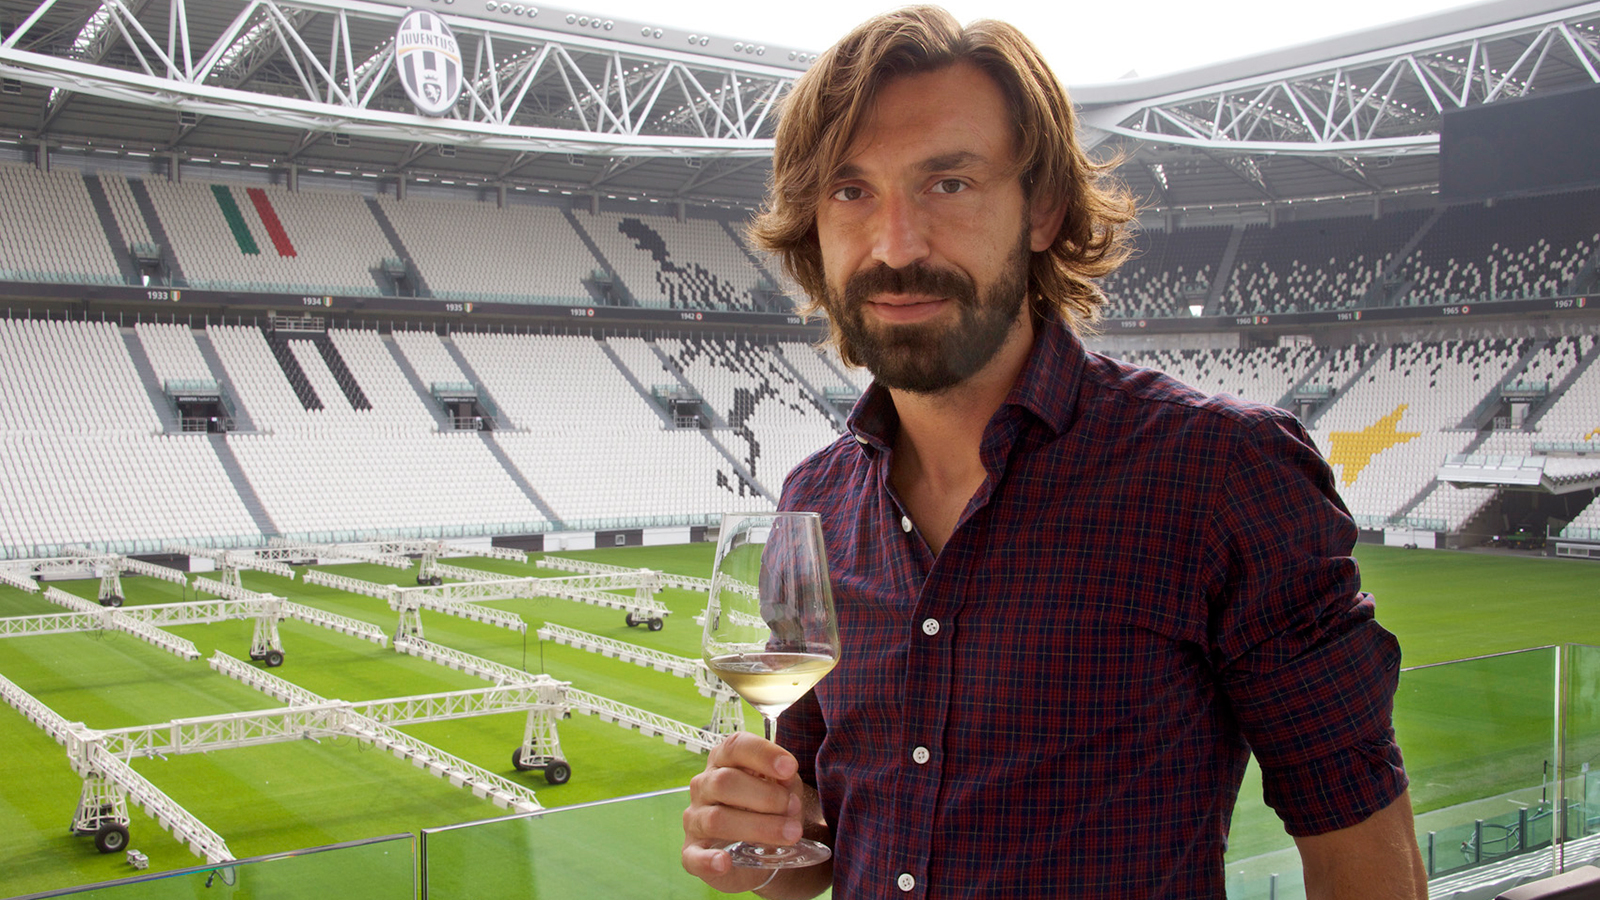 Unfiltered Winemaking Soccer Star Andrea Pirlo Is ing to